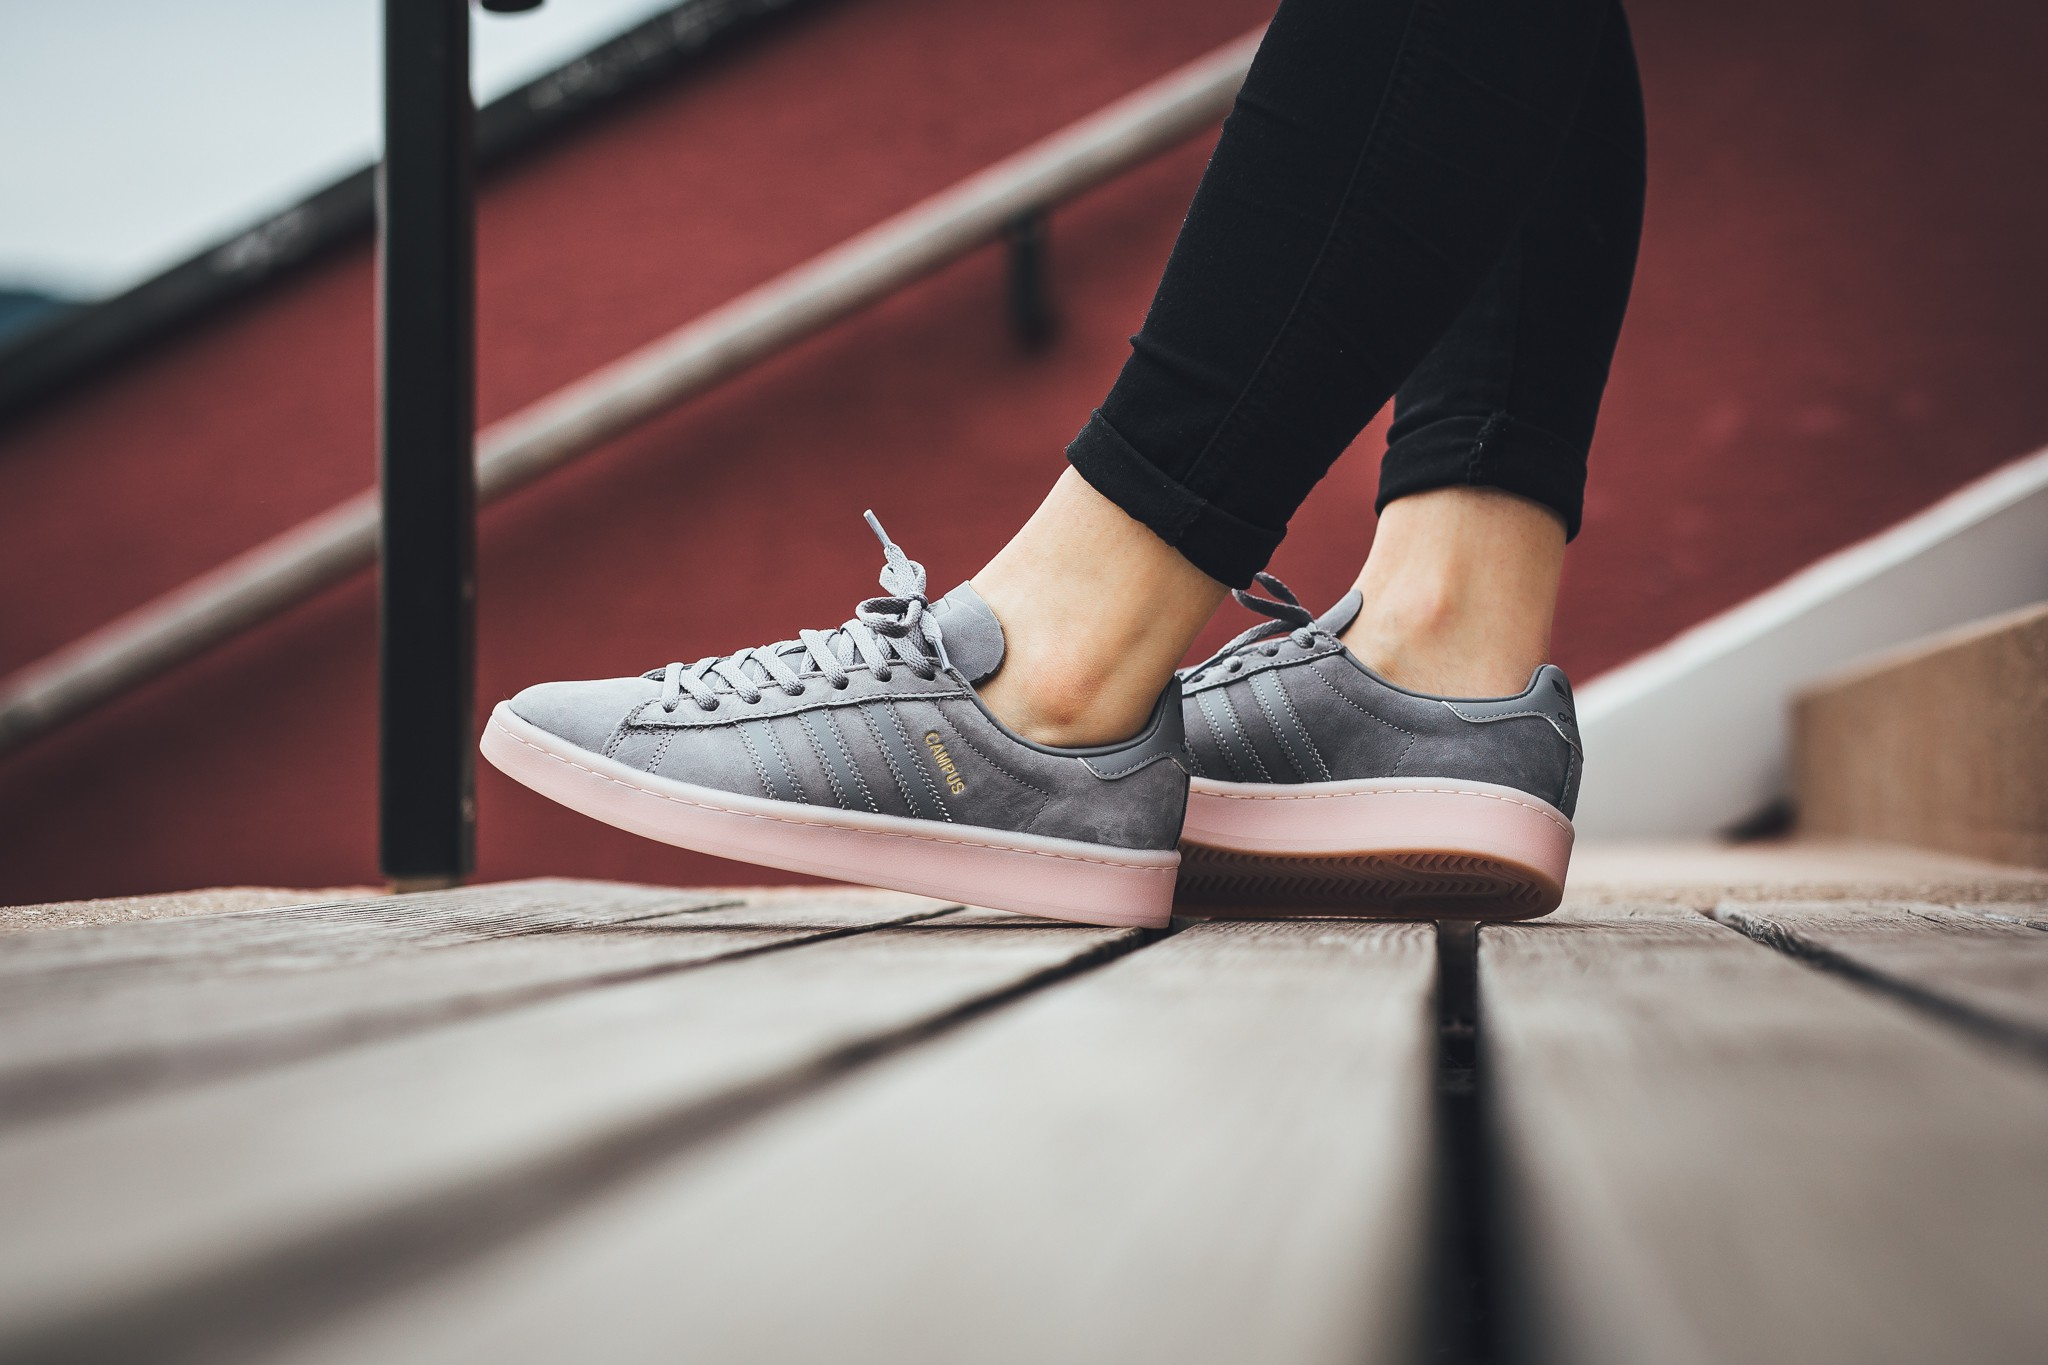 This Women's adidas Campus Comes With